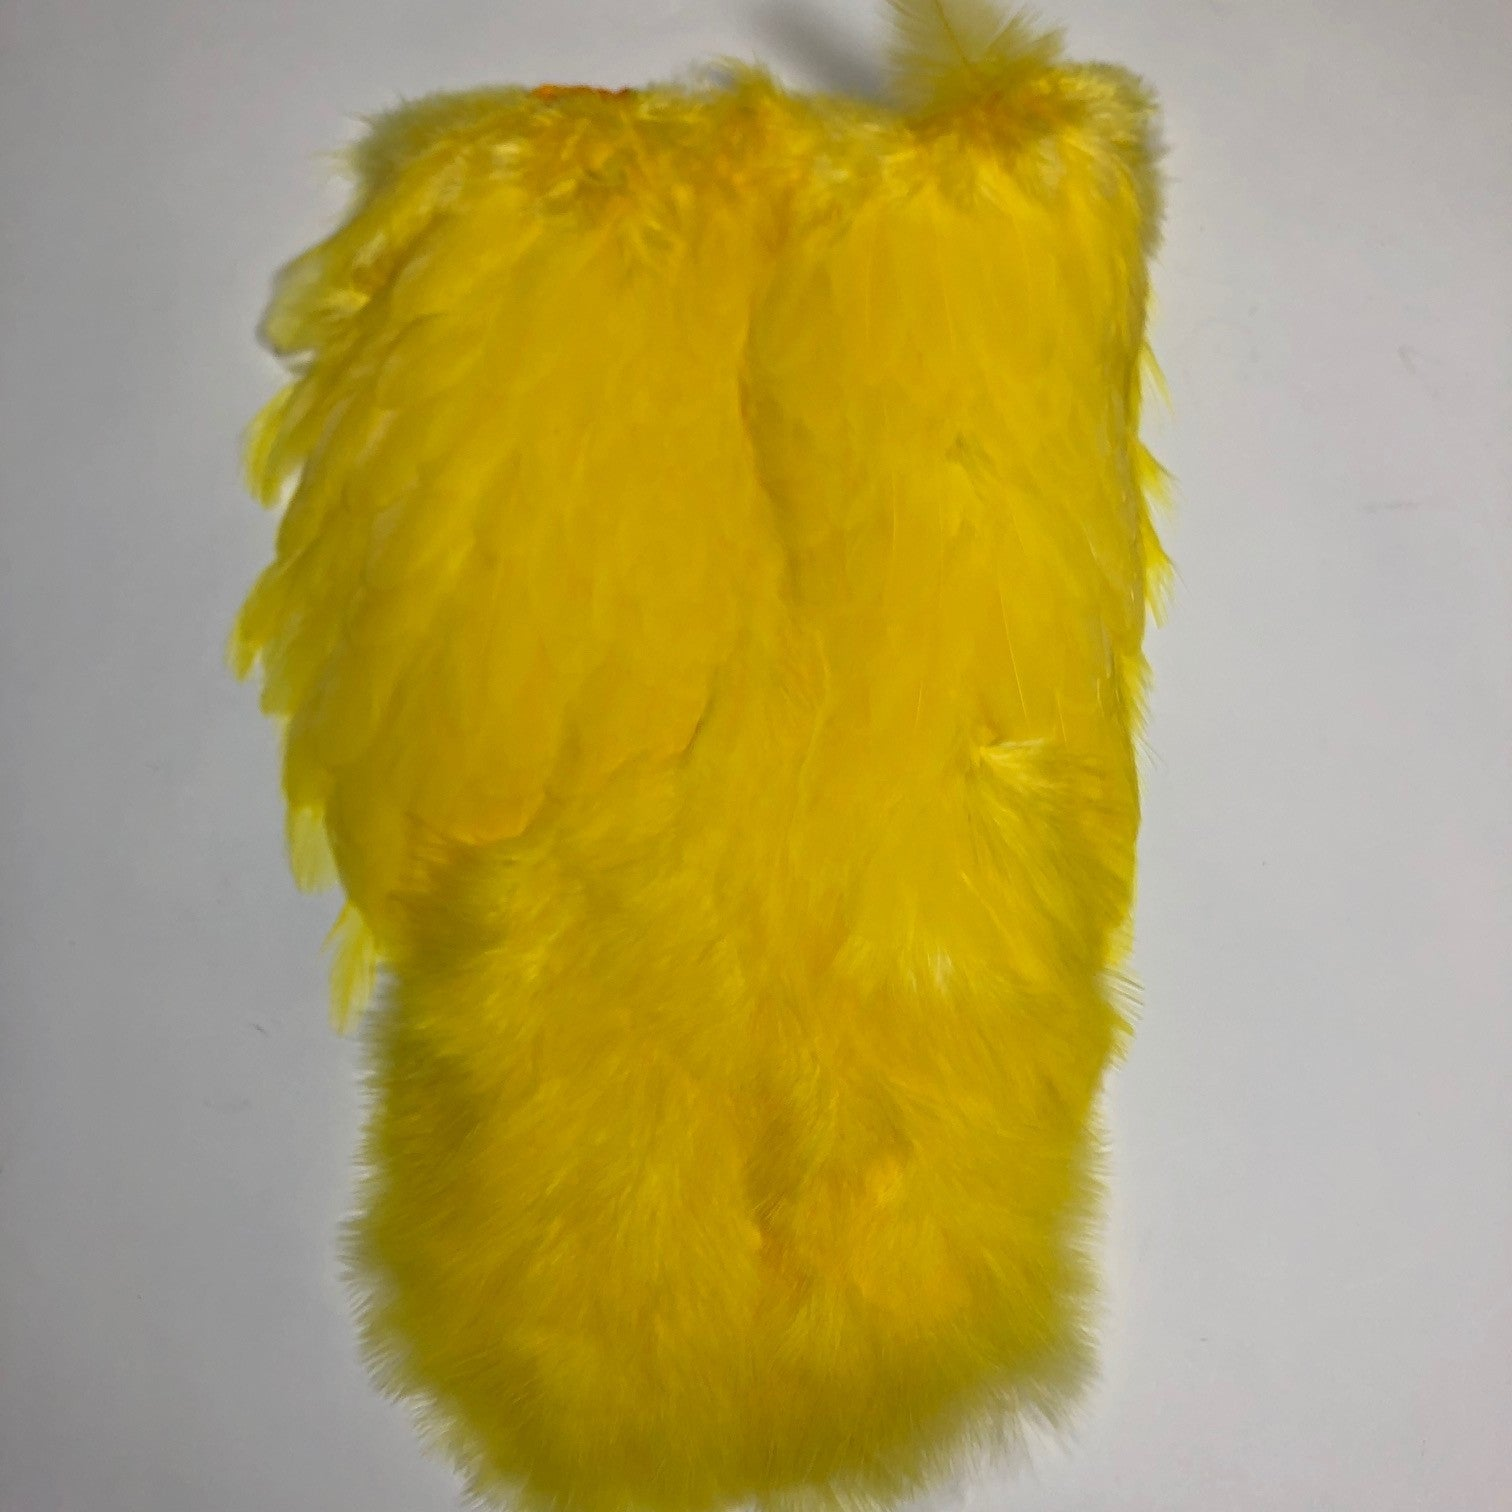 Whiting softhackle /& Chickabou White Dyed Yellow